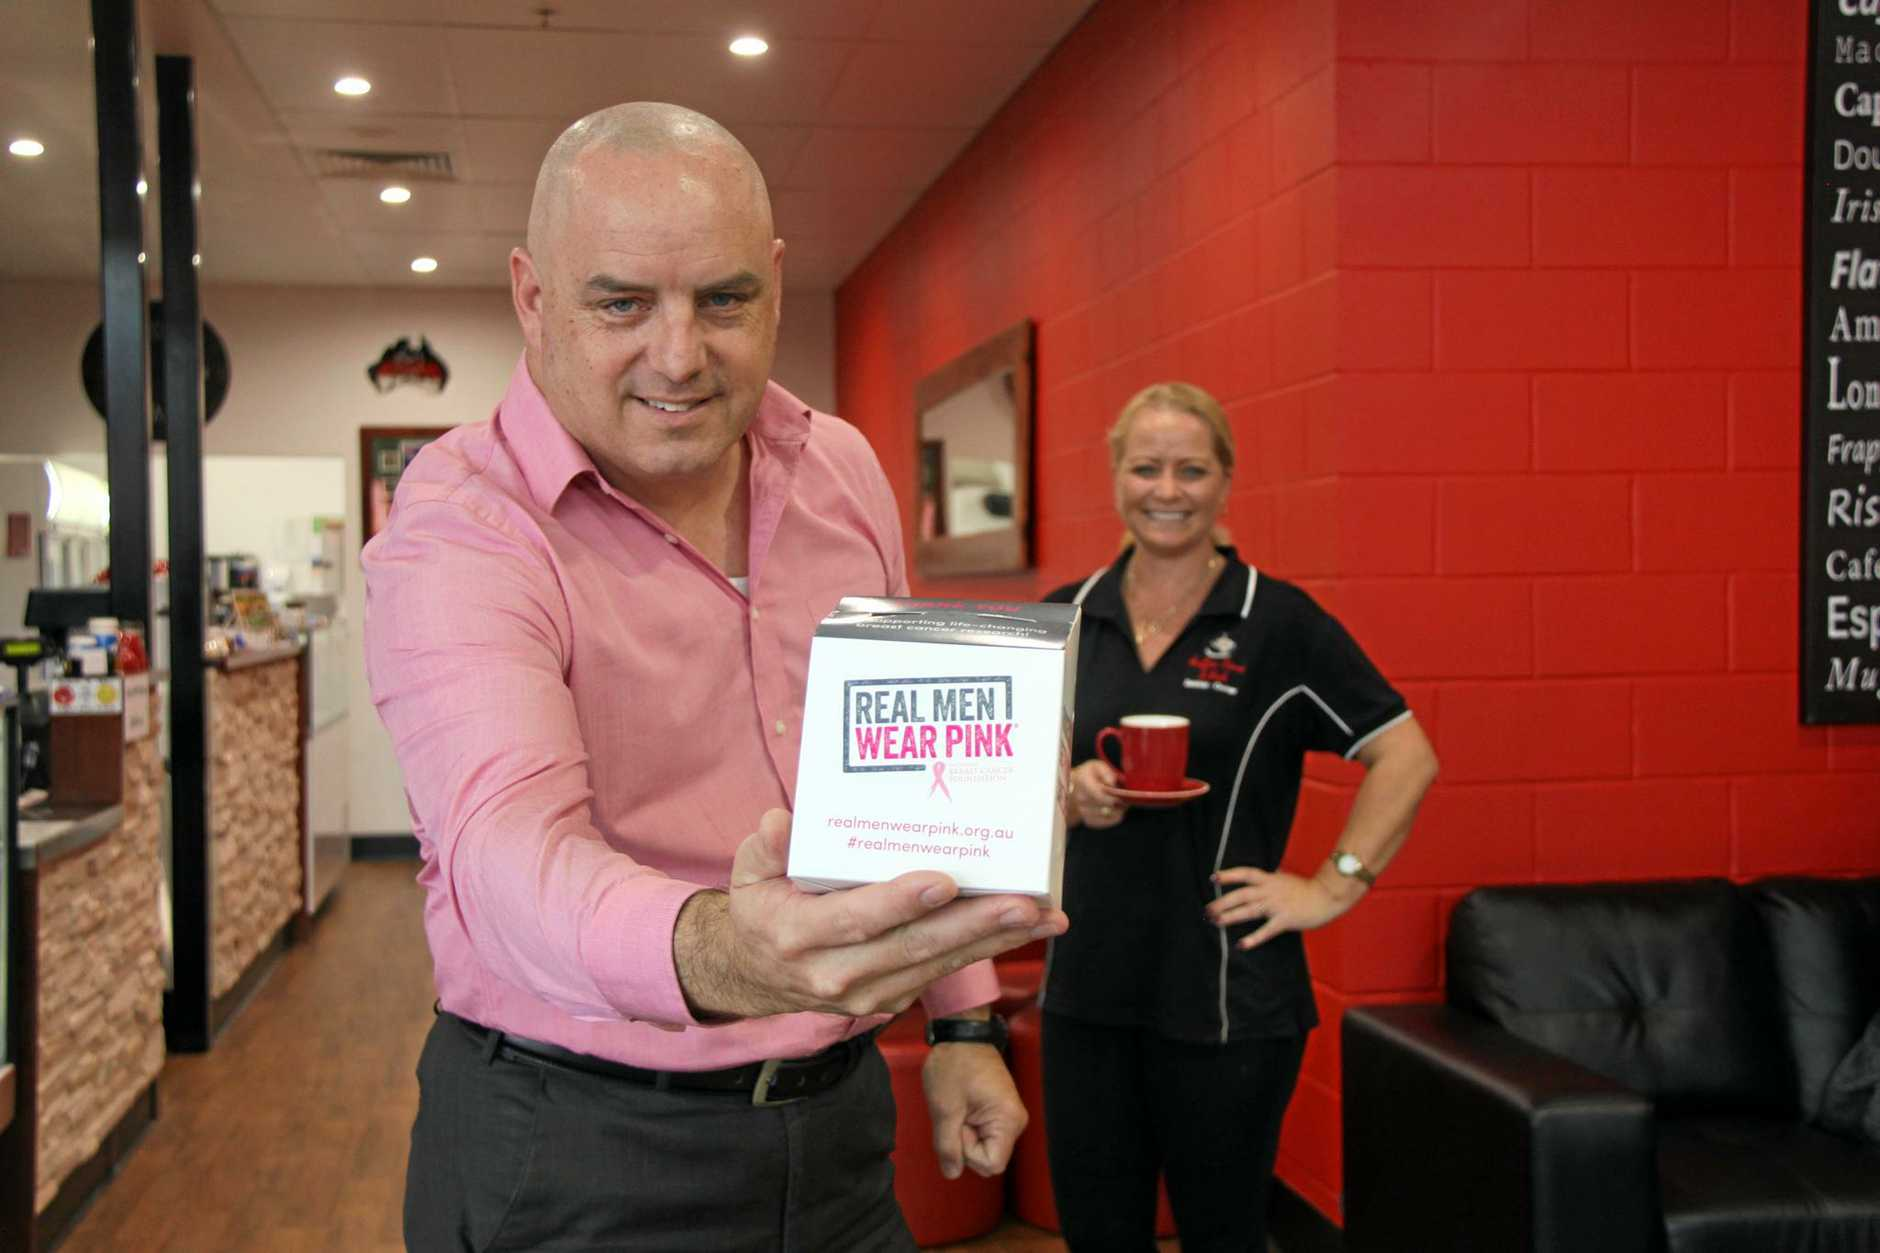 GET YOUR PINK ON: Real Men Wear Pink supporter Philip Gibson with Deb Nabbo at Coffee Time in Goonellabah. Deb will donate 20c from every coffee sold on June 16 to Philip's campaign.